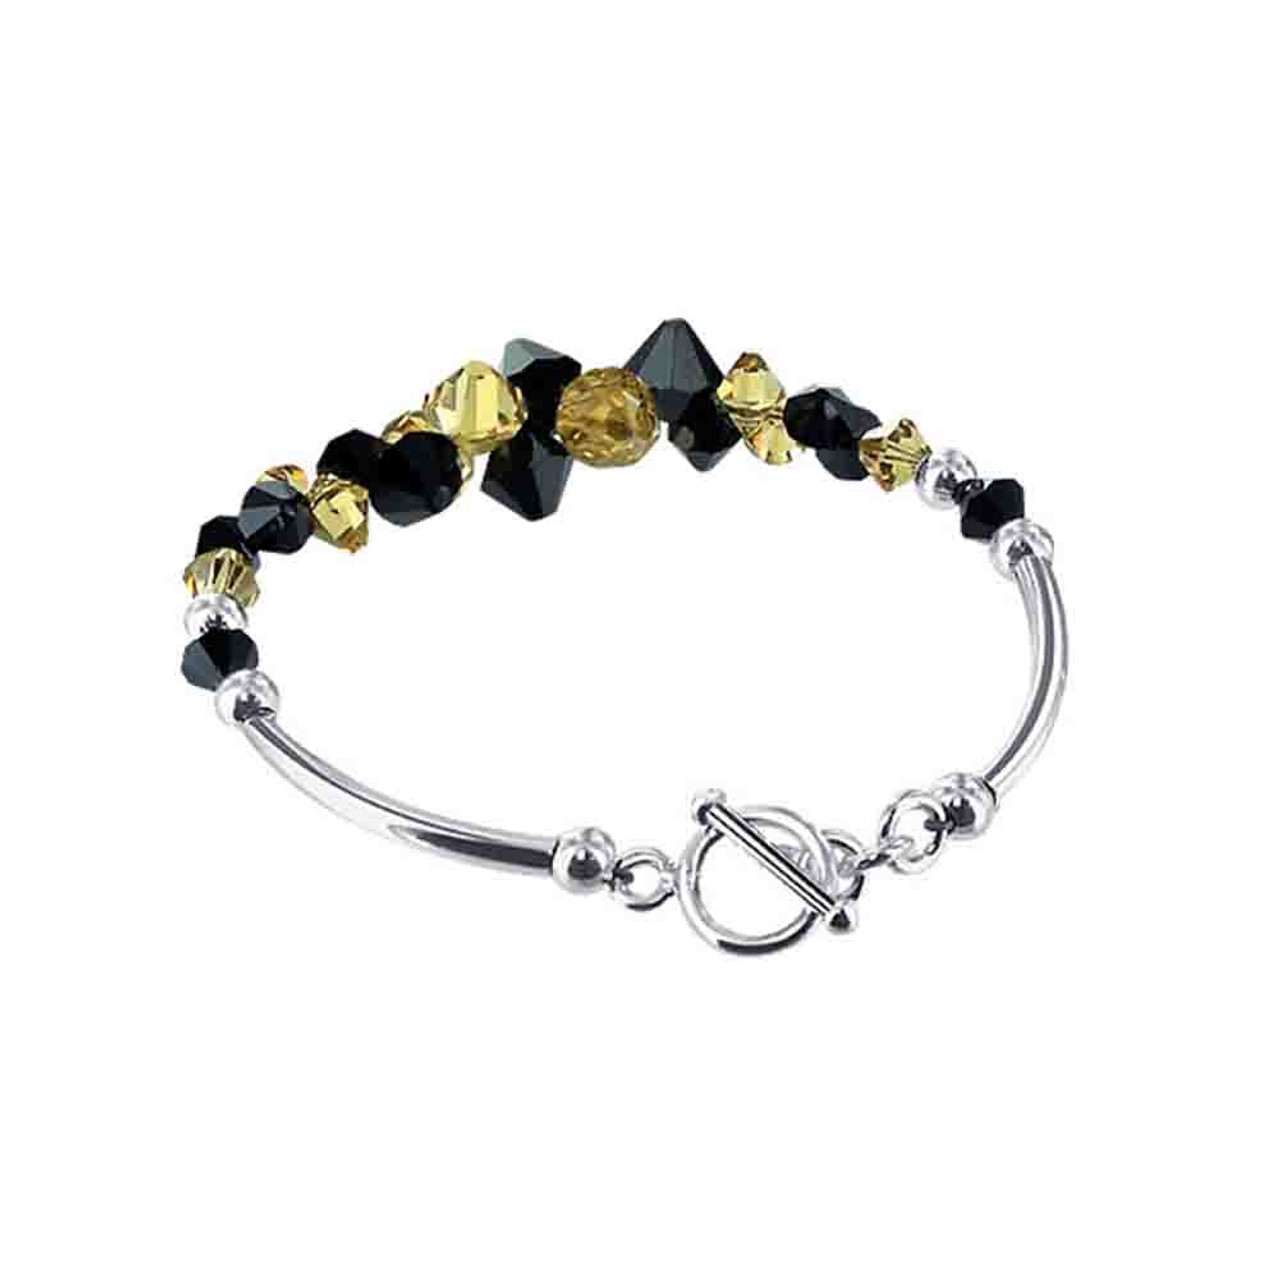 Cluster Style Swarovski Elements Black and Yellow Crystal 7.5 Inch Bracelet